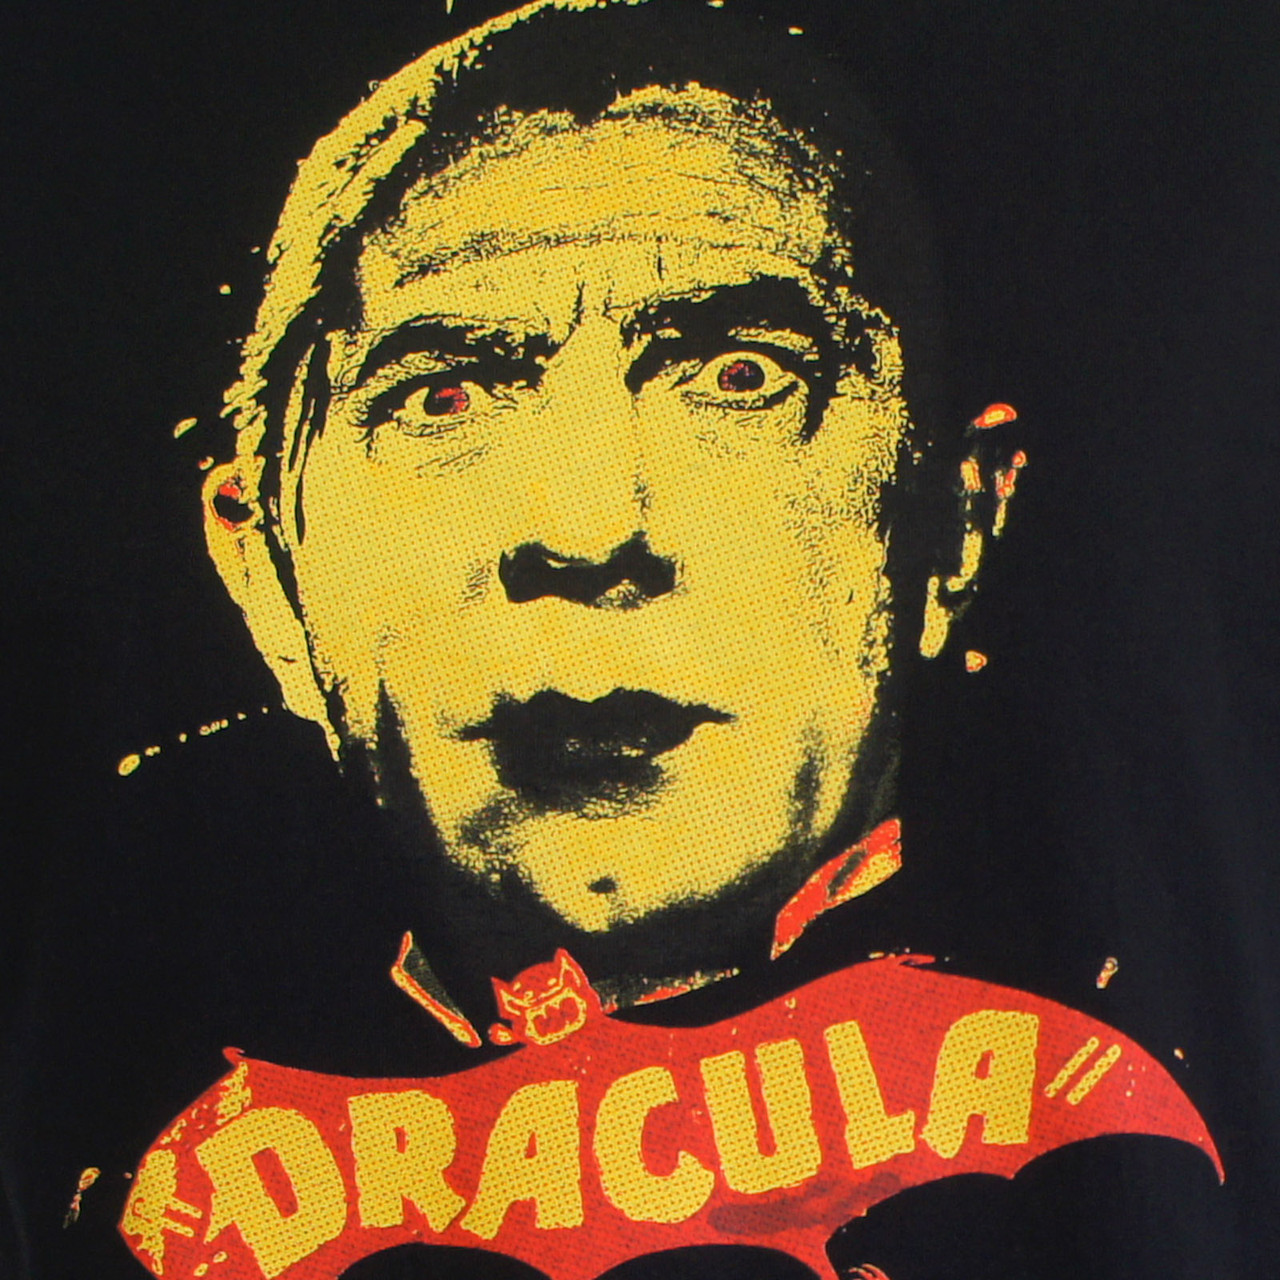 http://d3d71ba2asa5oz.cloudfront.net/12013655/images/bl14-ydrac%20dracula%20in%20yellow%20t-shirt%20(3).jpg